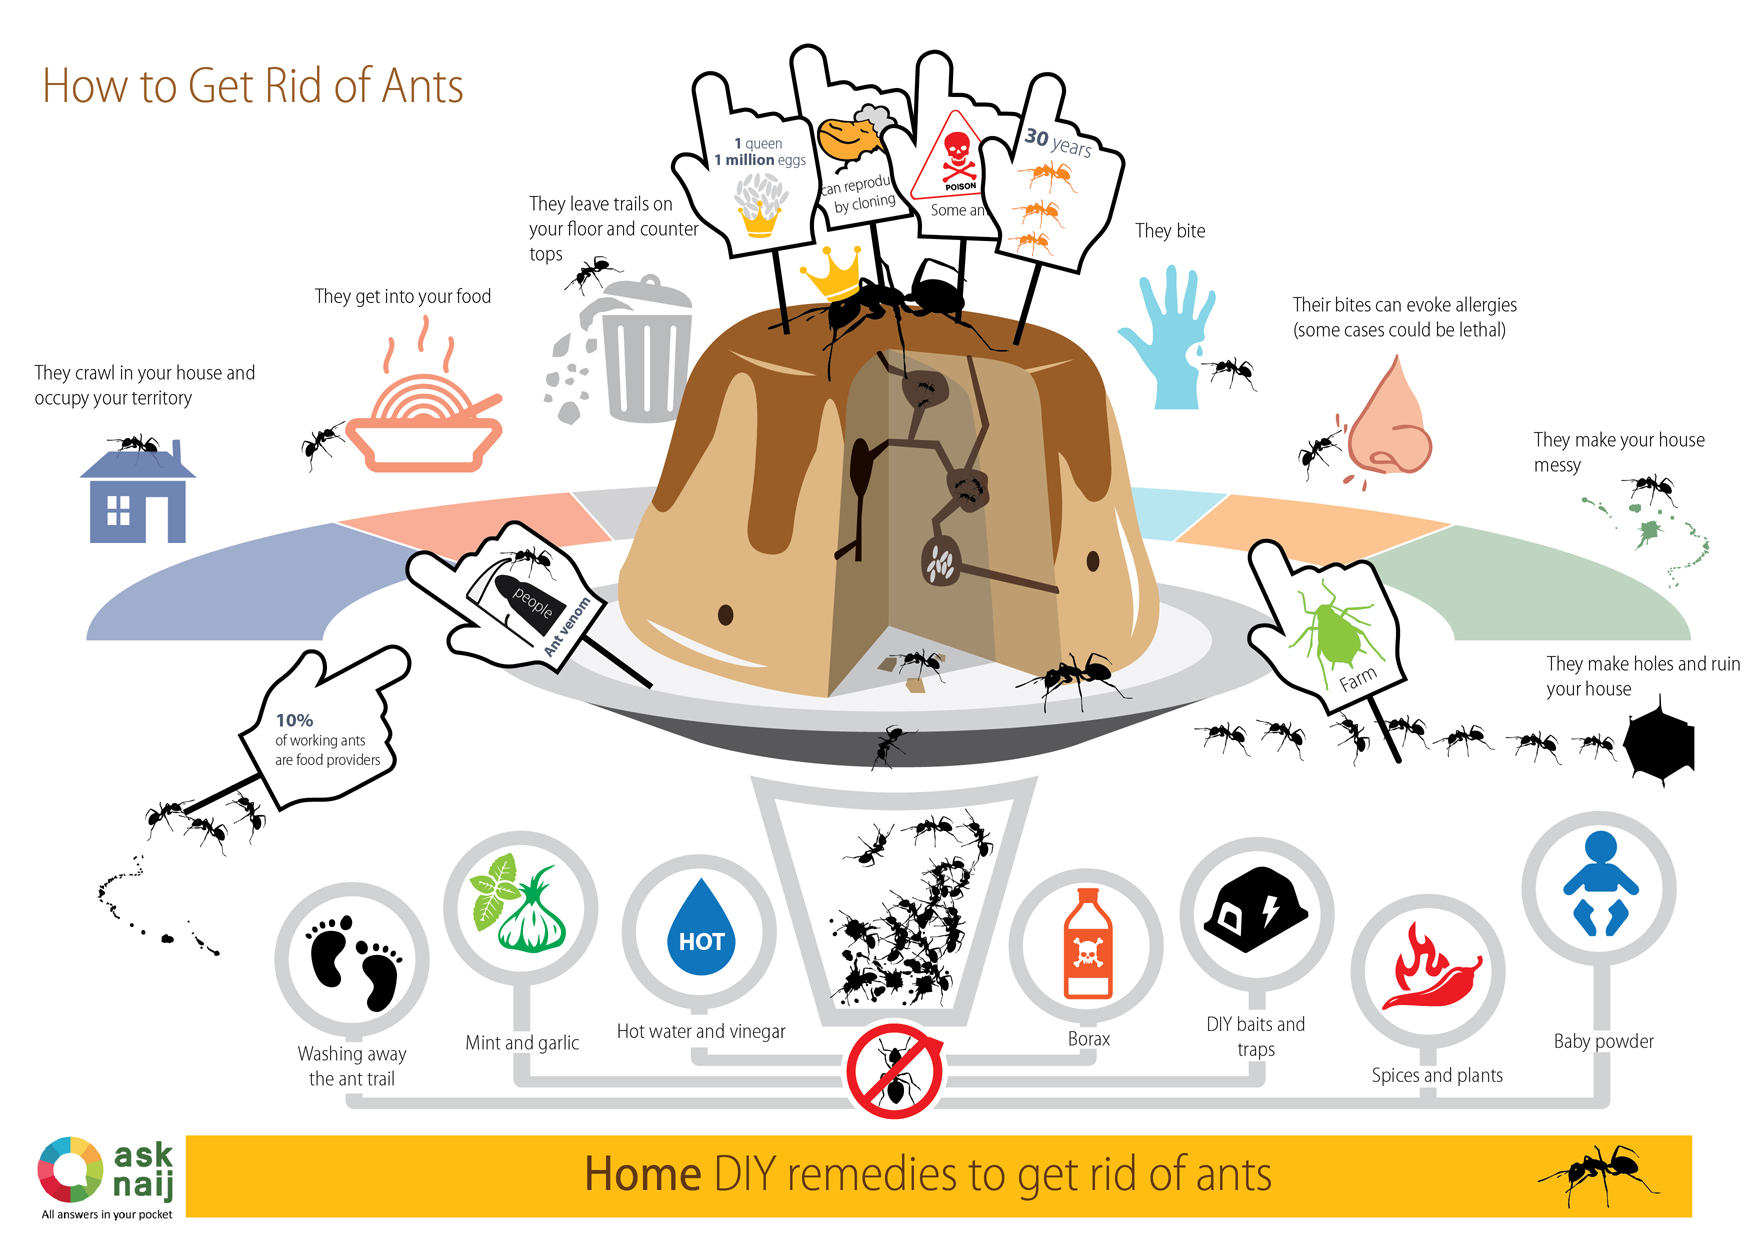 How to Get rid of Ants - 7 DIY Remedies